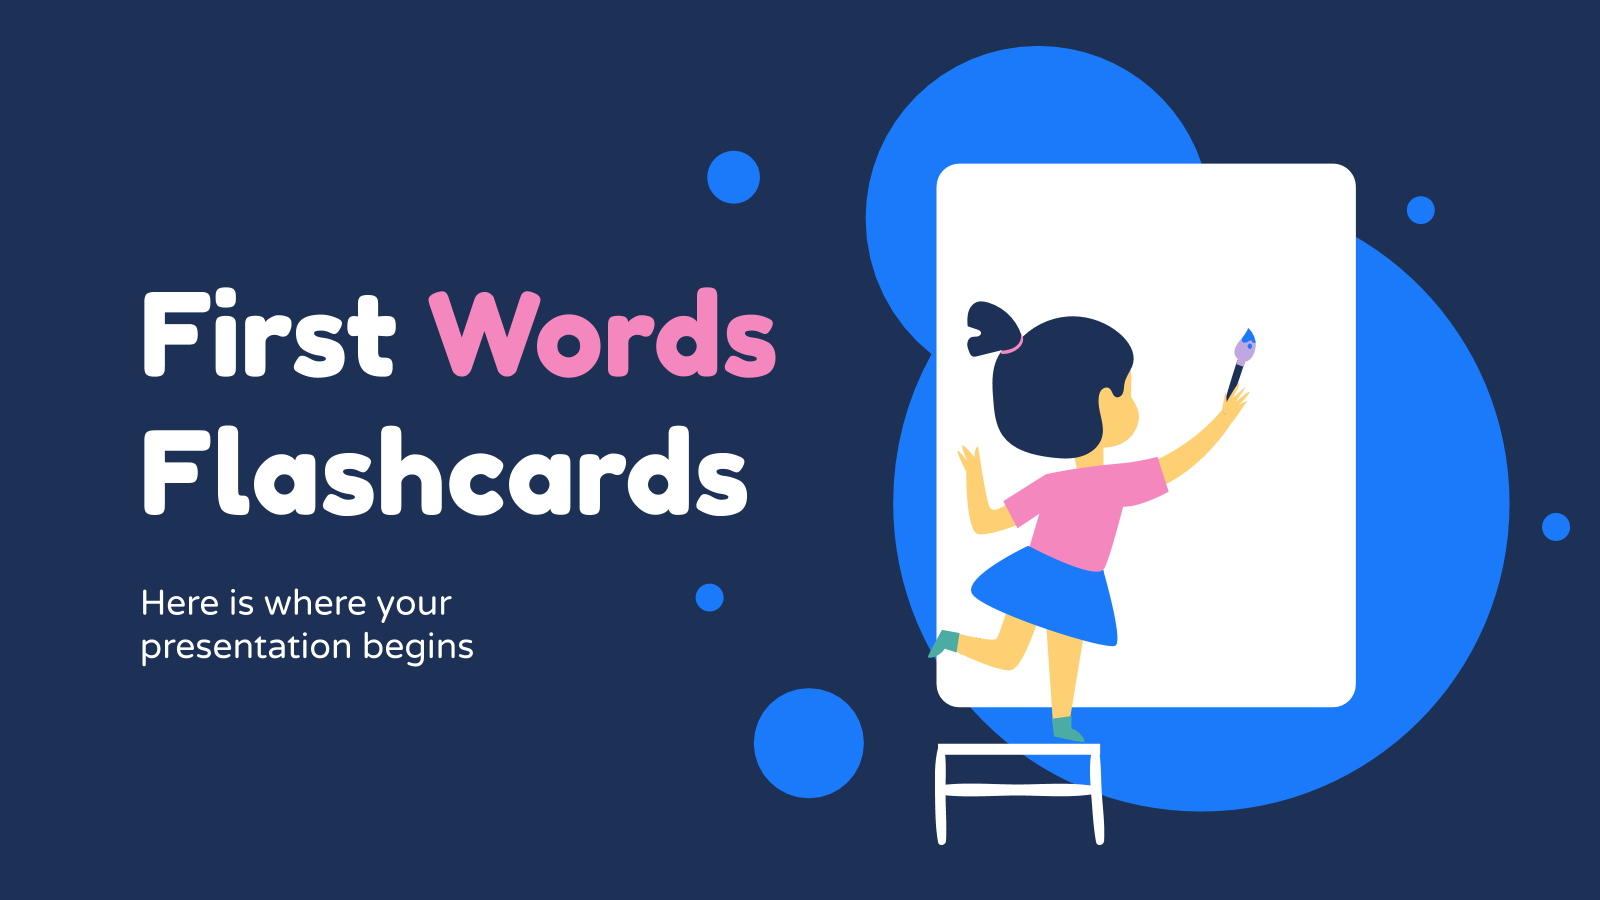 First words flashcards presentation template